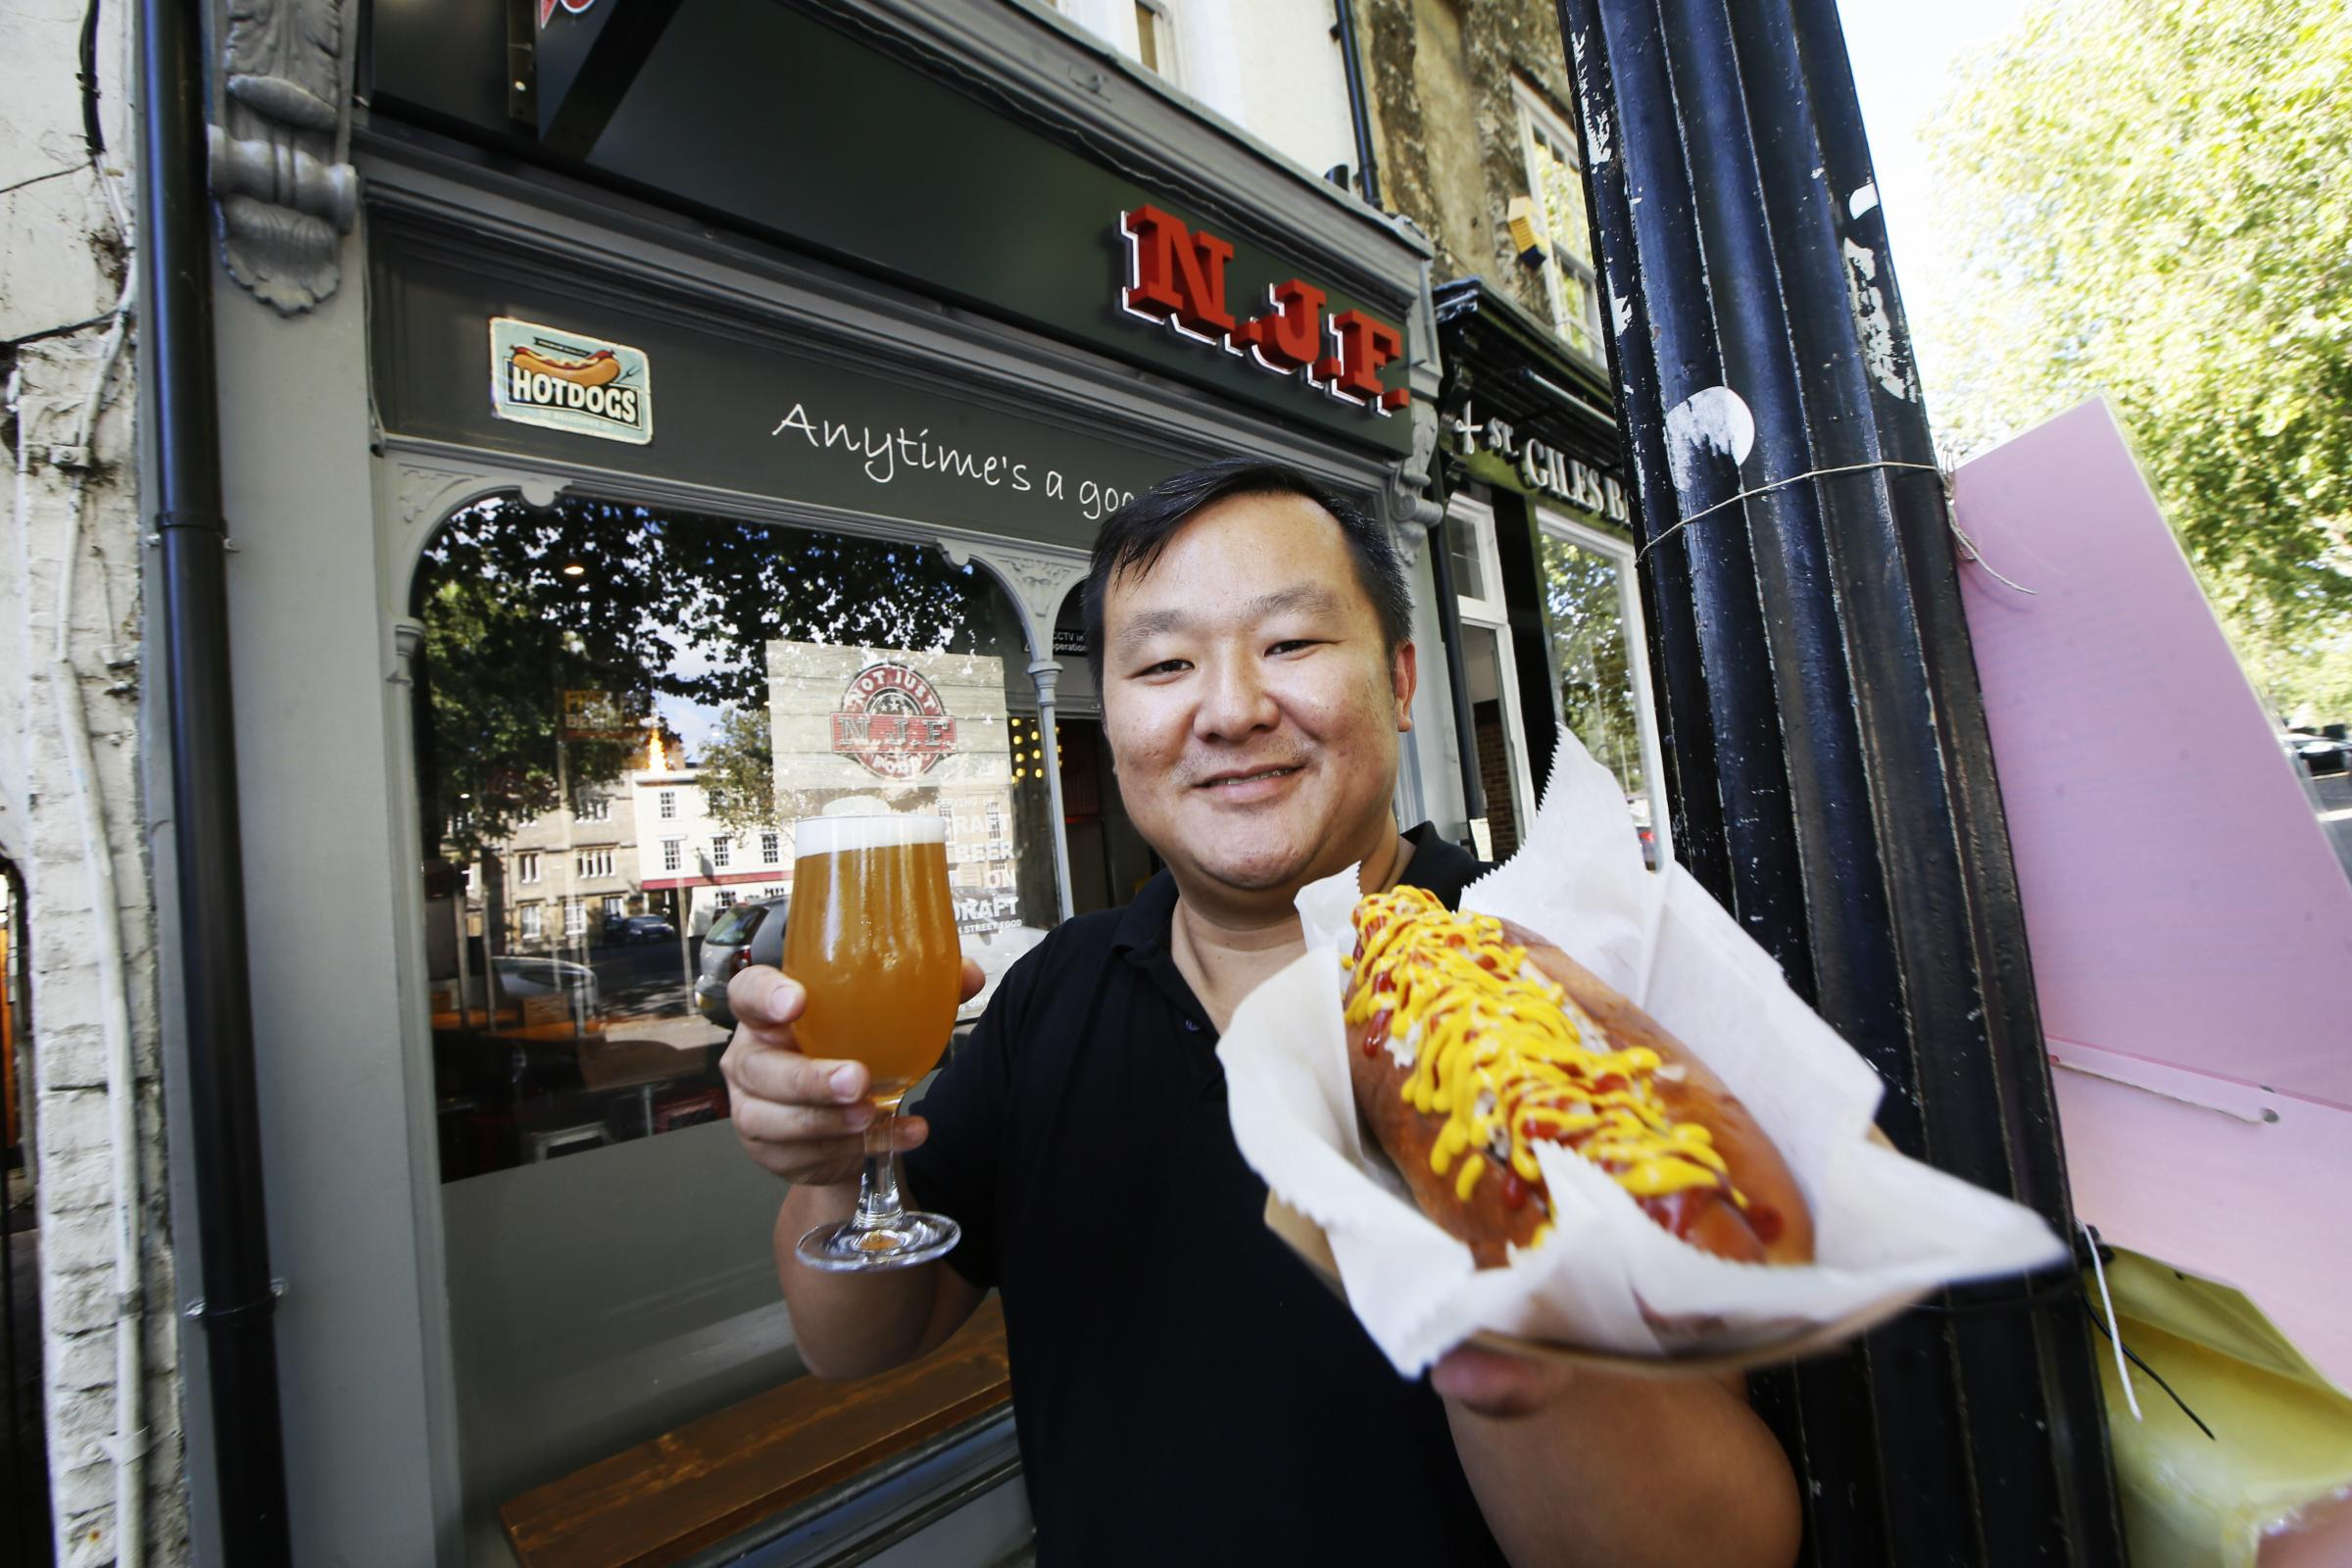 Former St Giles' Cafe in Oxford is now selling hotdogs